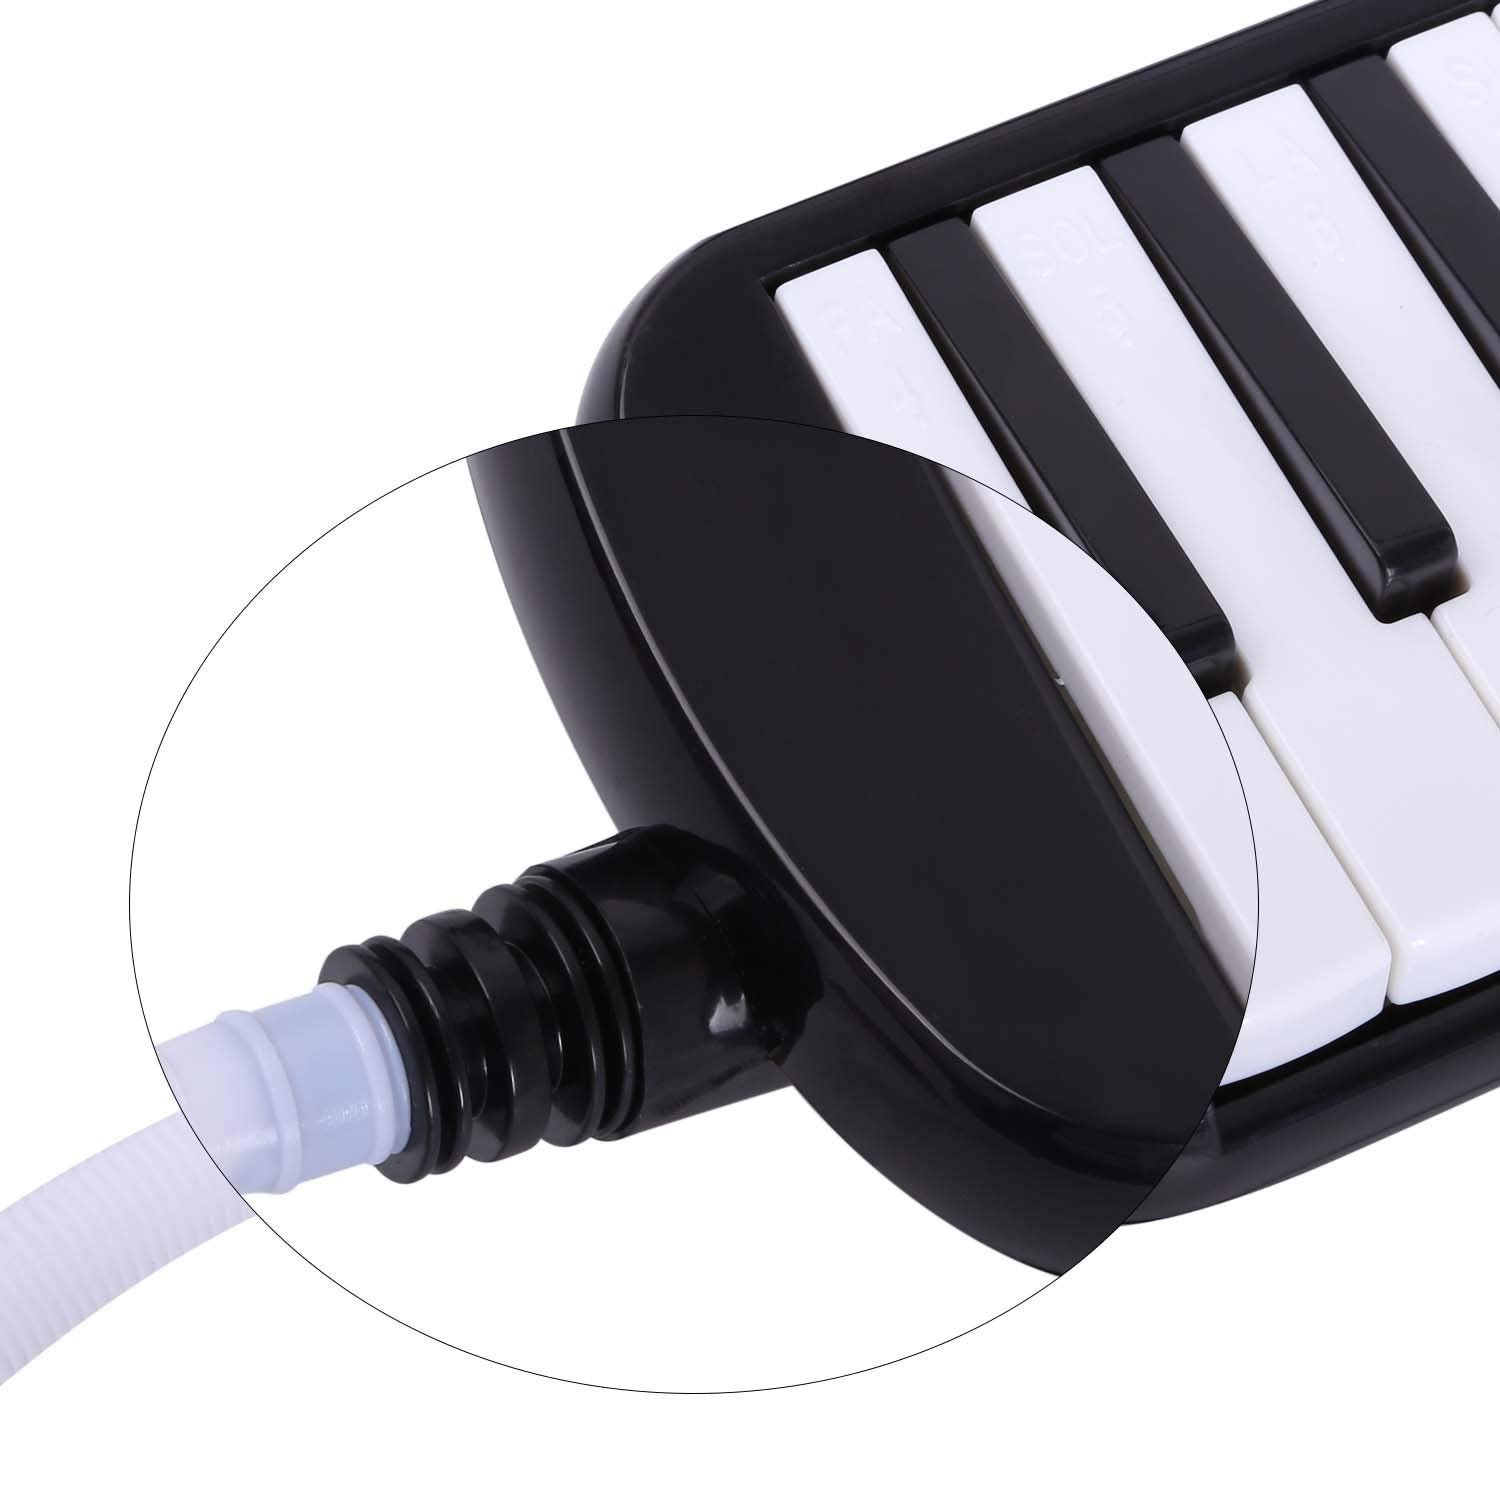 Timiy 32 Keys Melodica Piano with Mouthpieces Tube & Carrying Bag Musical Instrument Black by Timiy (Image #6)